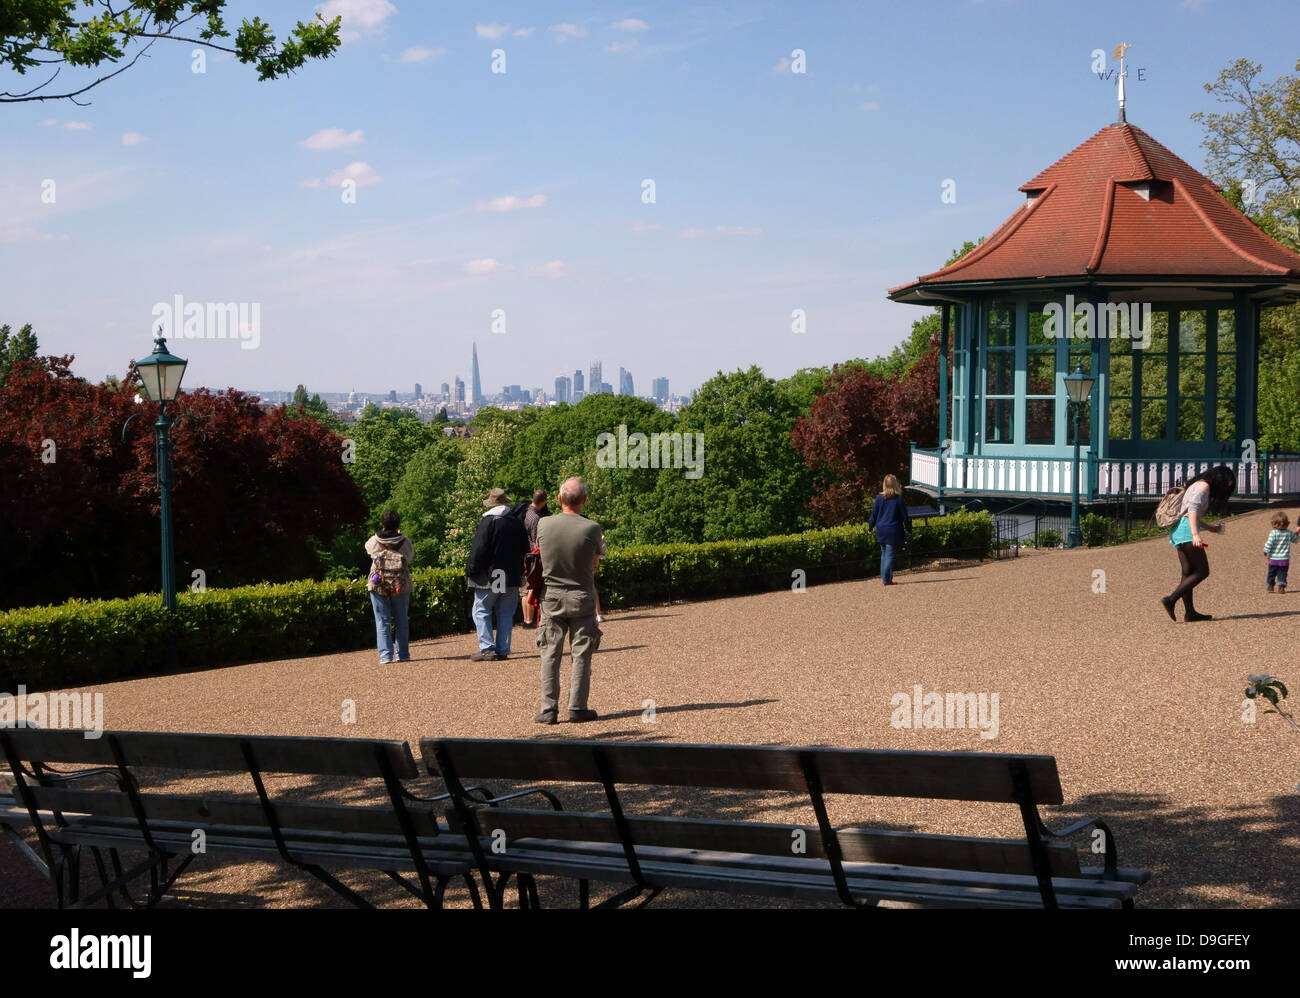 View from Horniman Gardens in Forest Hill, South London with City skyline in distance Stock Photo